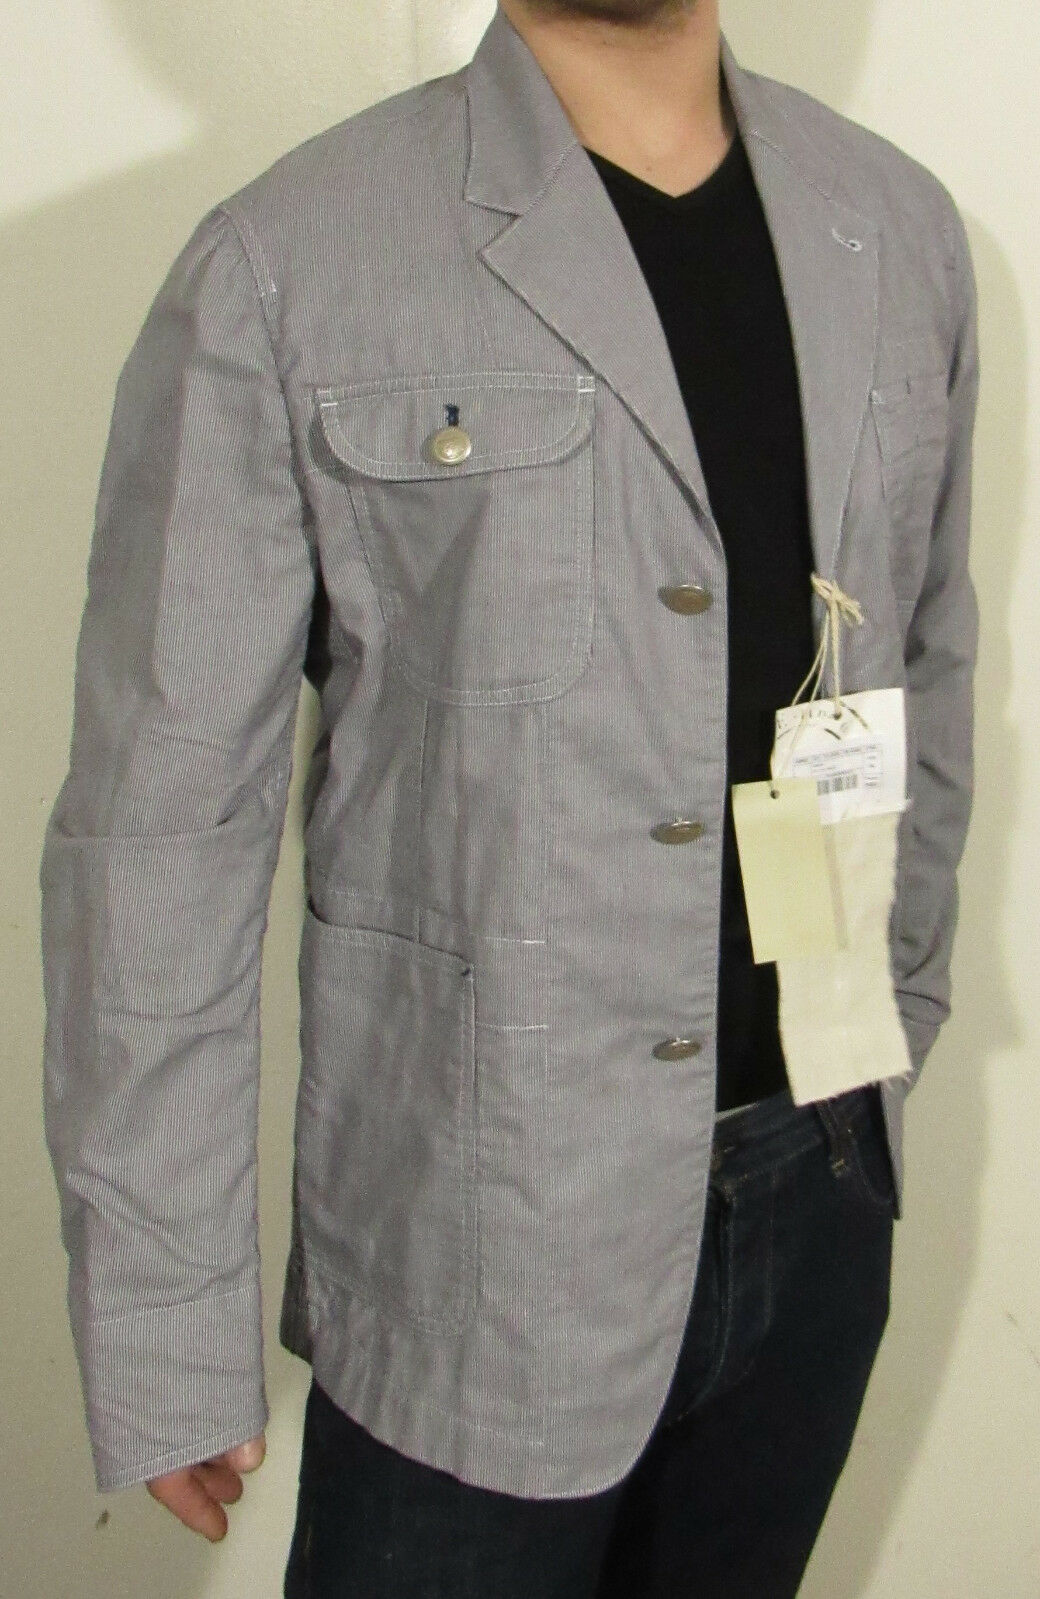 NWT Functioning Cuff 44R Unstructured Gas Jeans Casual Blazer White bluee Working